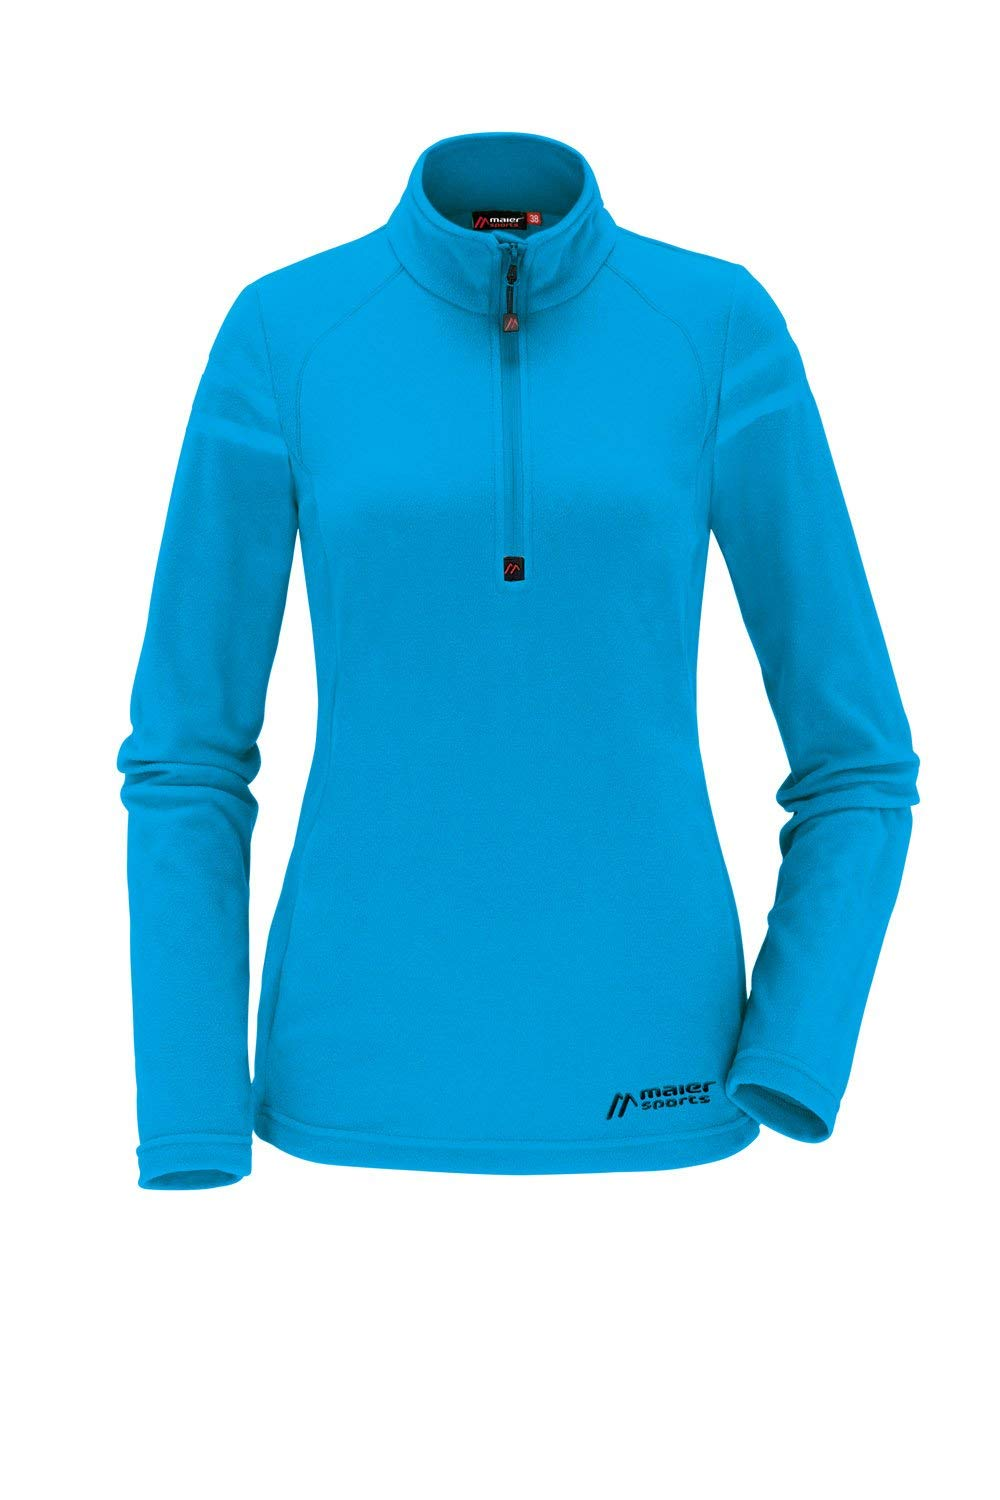 Maier Sports Damen Fleecerolli Greta peacock blue 42